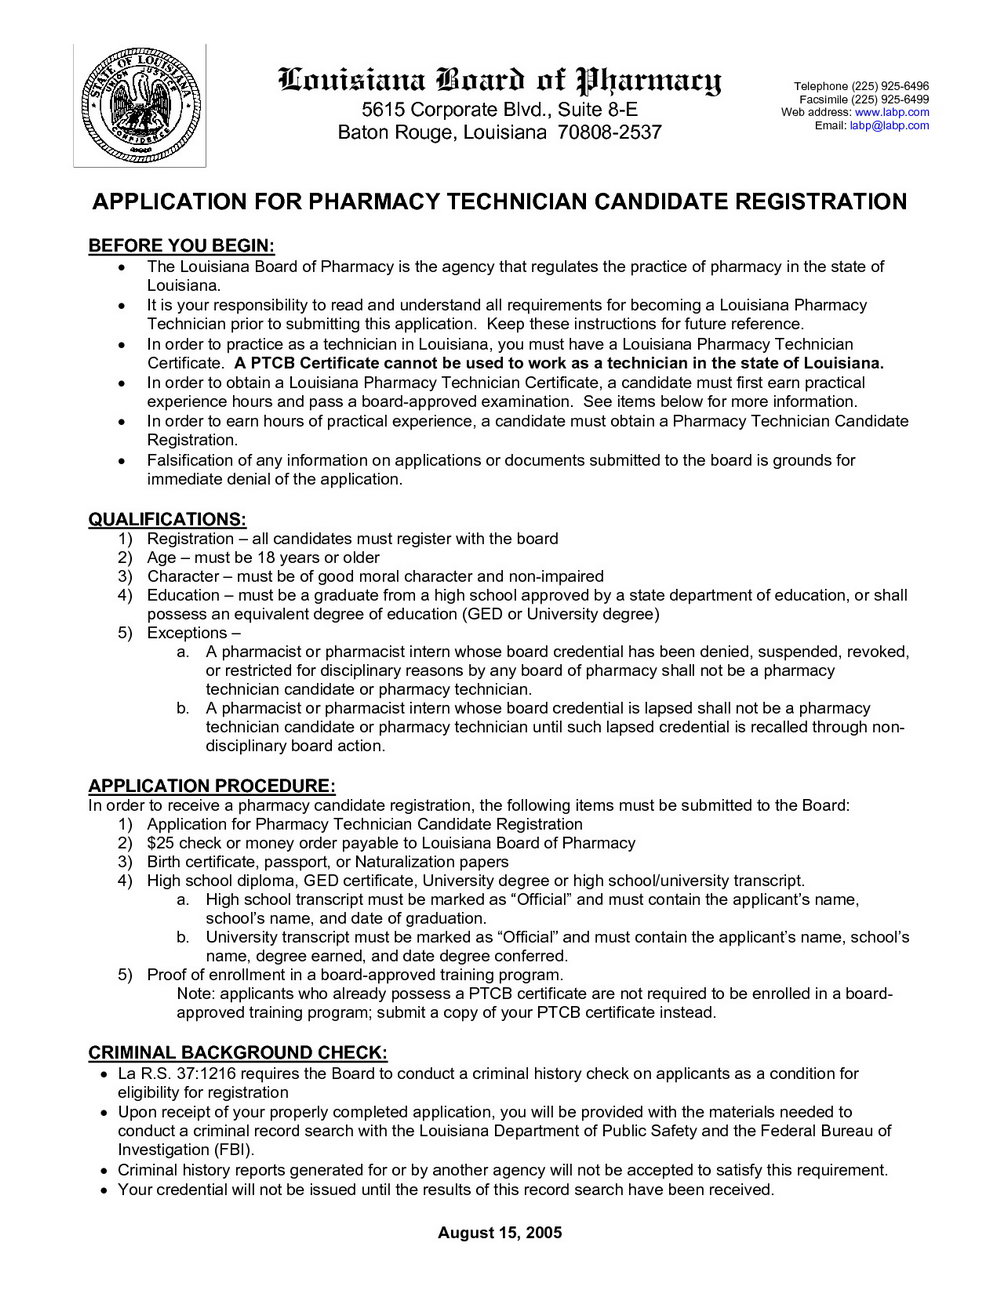 Sample Pharmacy Technician Resume With No Experience